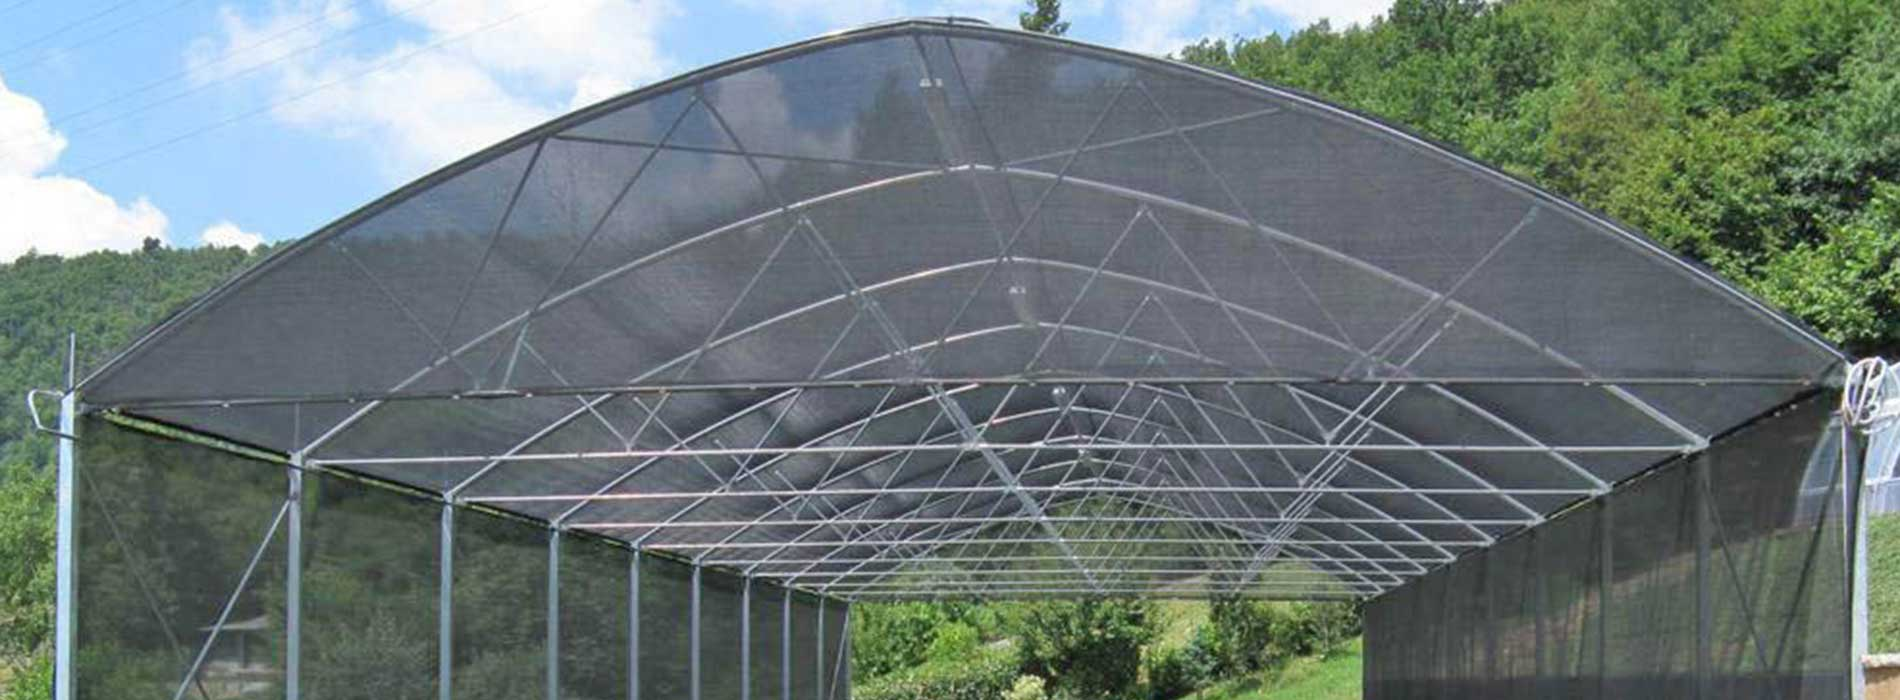 SHADE NETS FOR GREENHOUSES